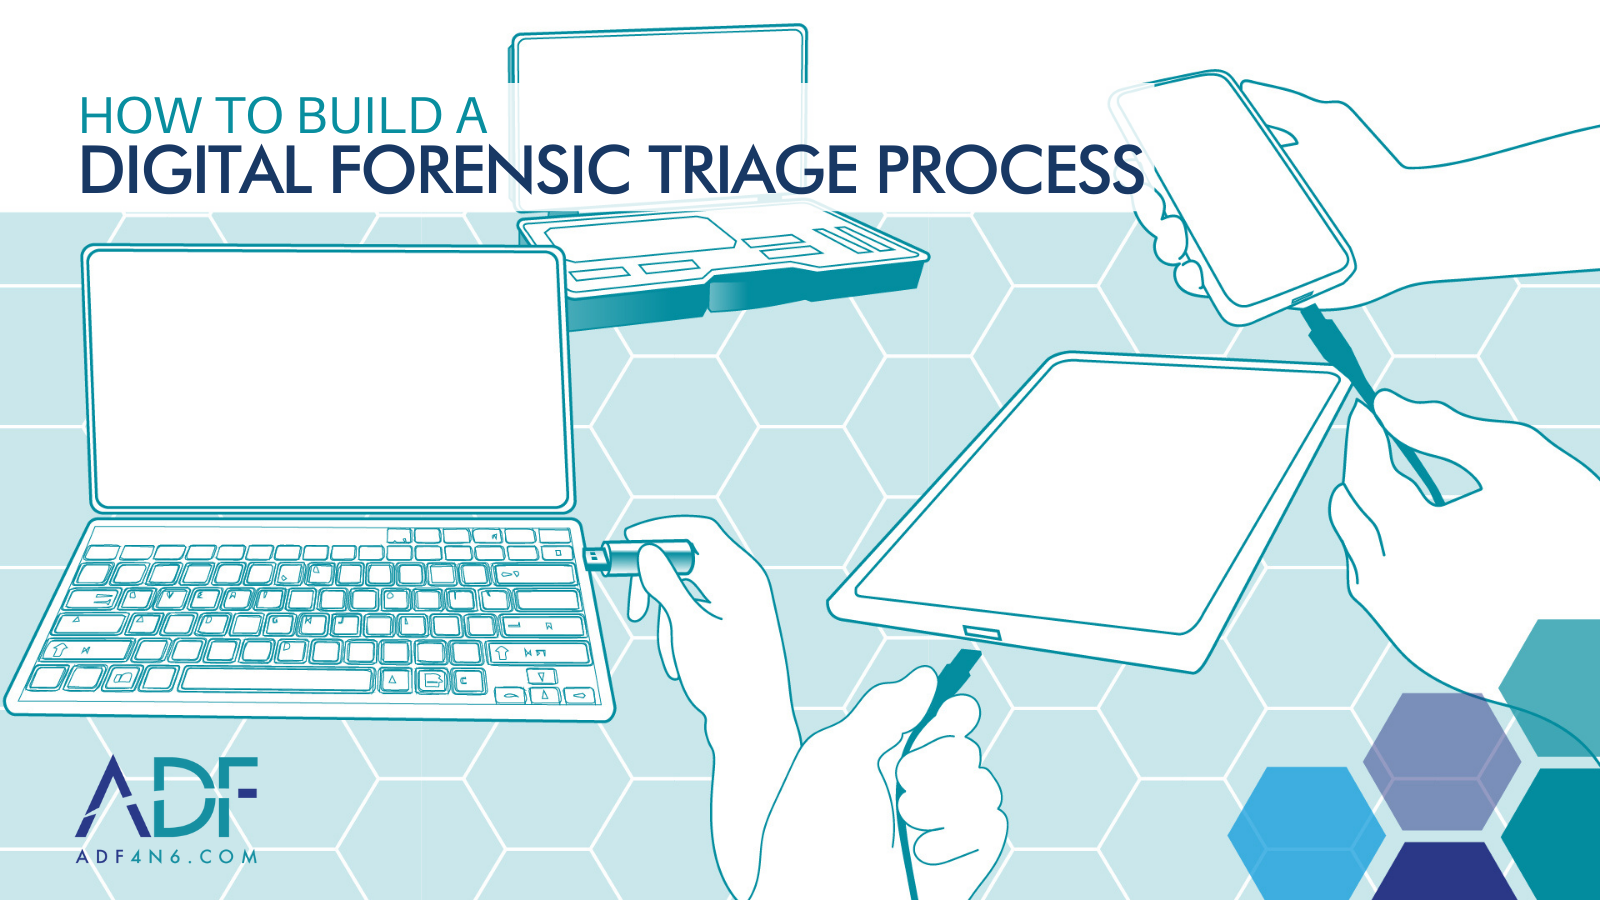 How to Have a Digital Forensic Triage Process that Works Field to Lab